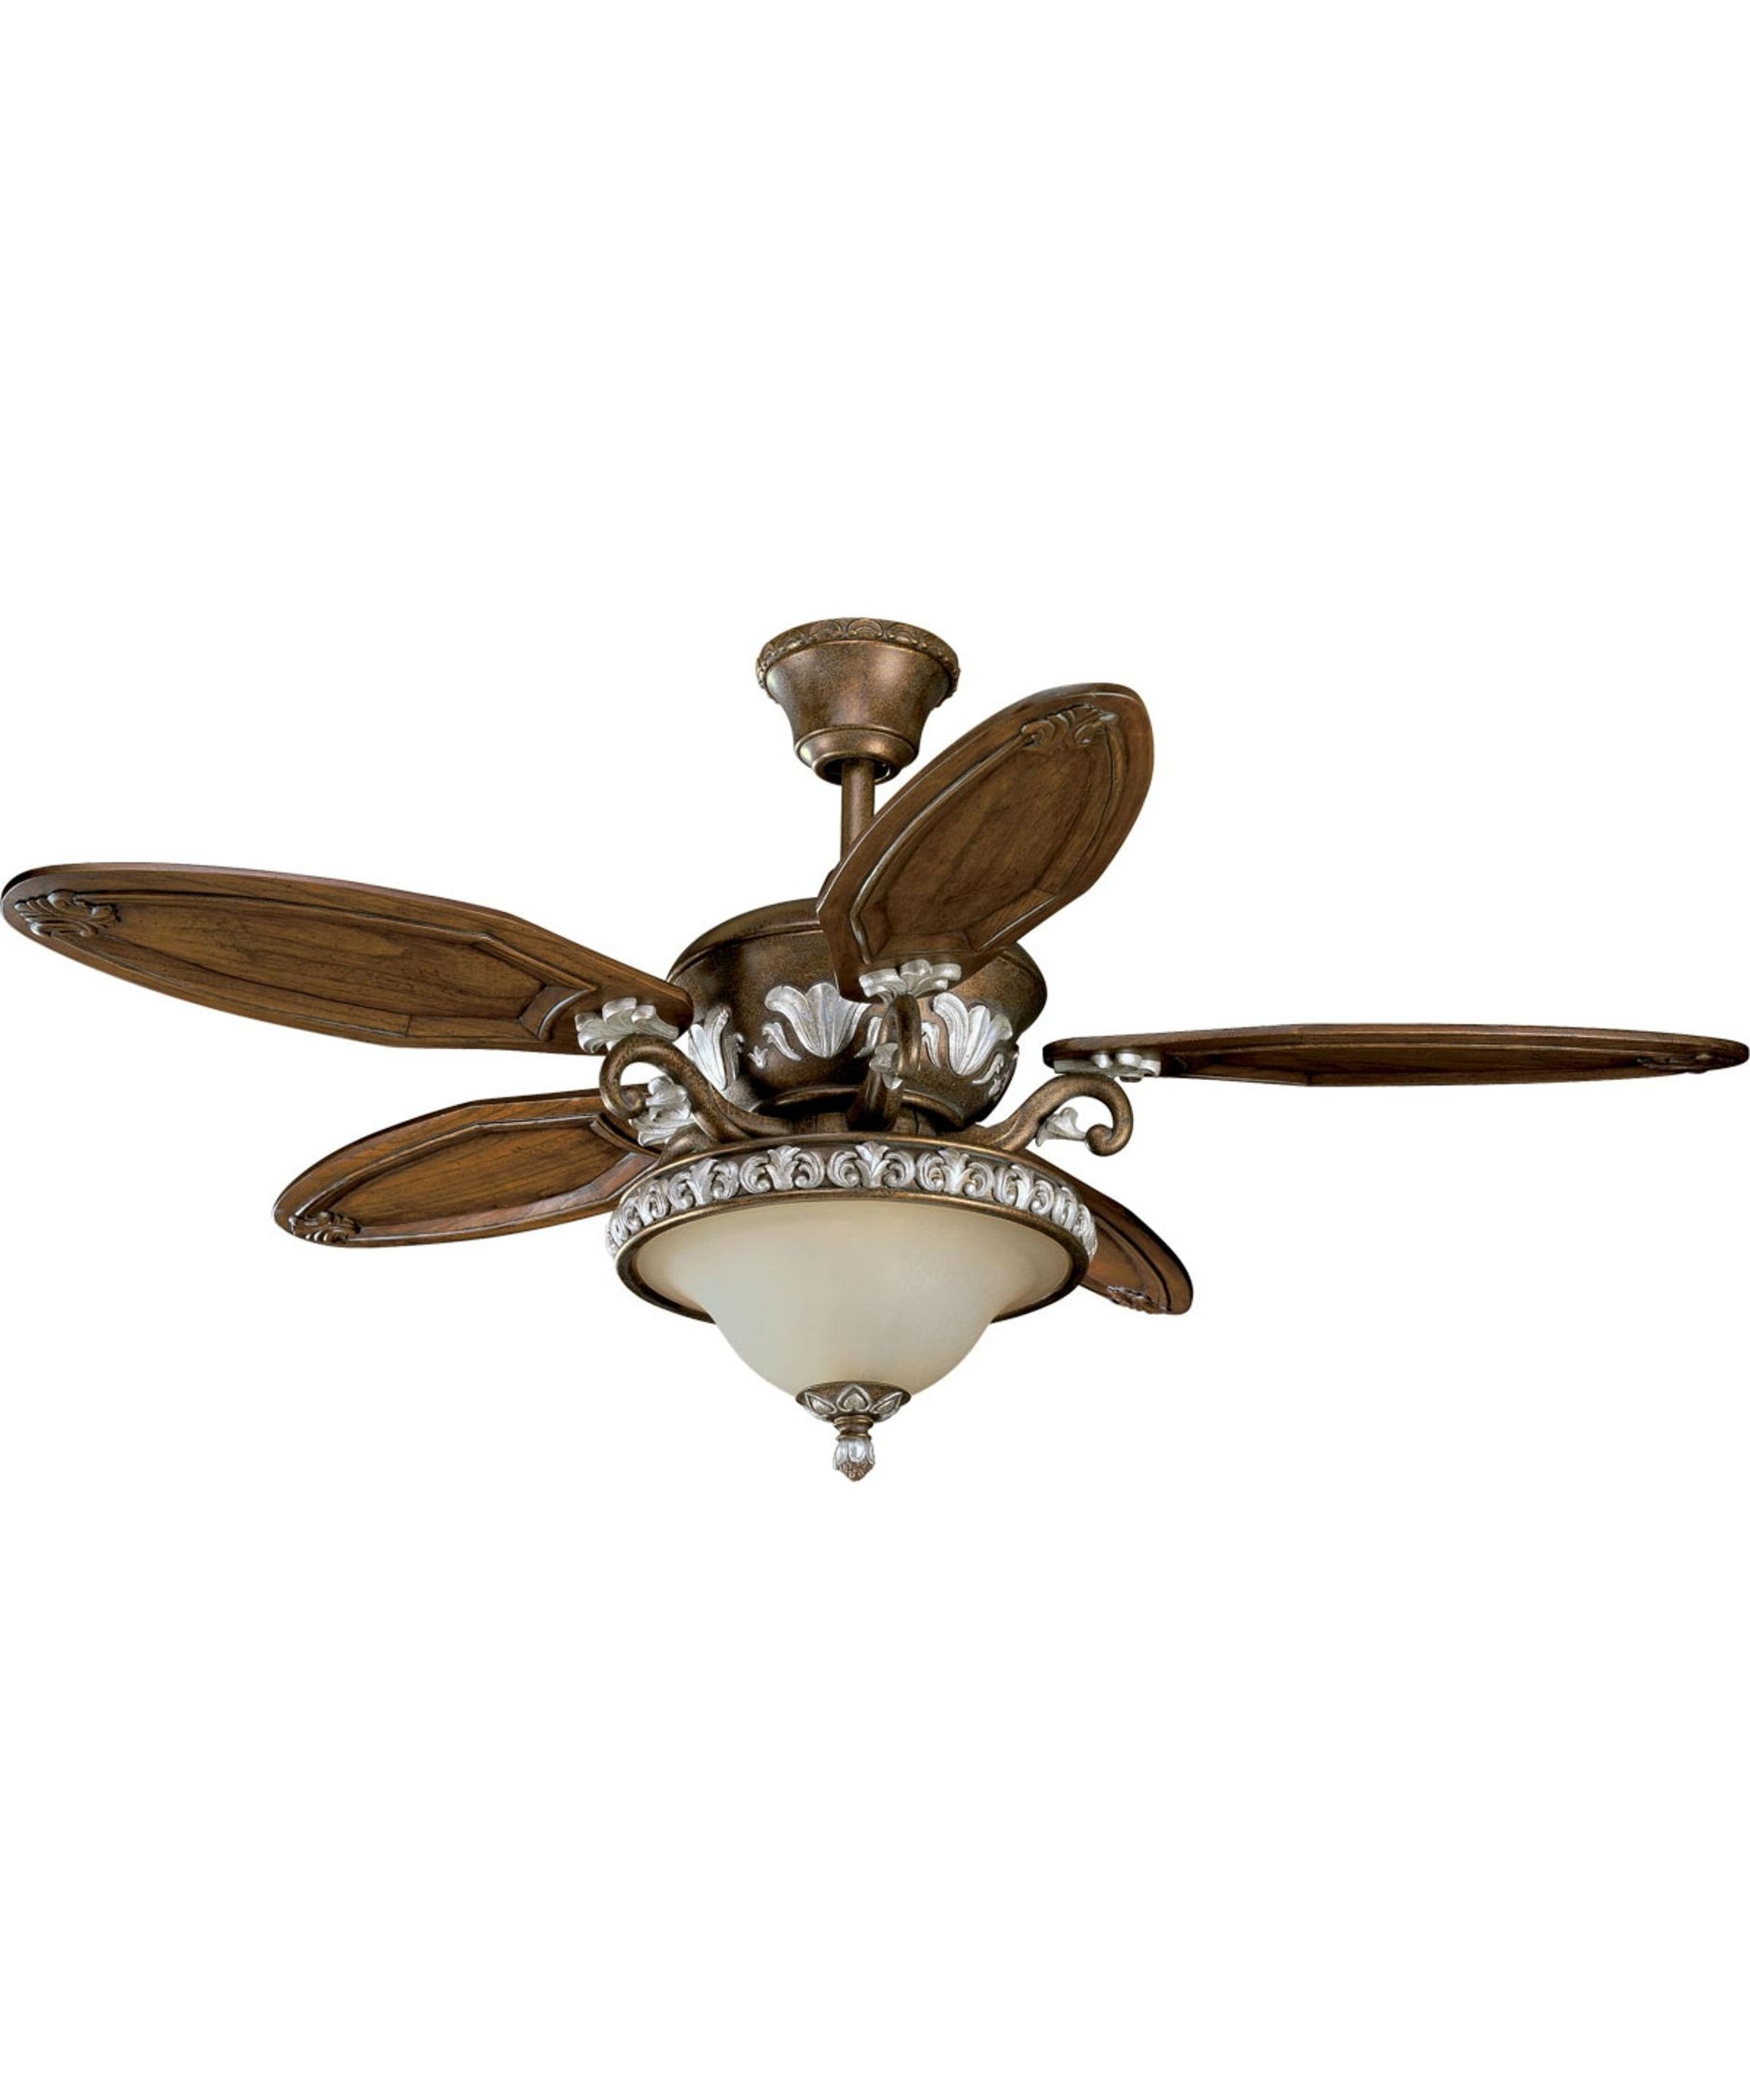 Widely Used Amazon Outdoor Ceiling Fans With Lights Within Thomasville Lighting P2505 Carmel 54 Inch 5 Blade Ceiling Fan (View 20 of 20)